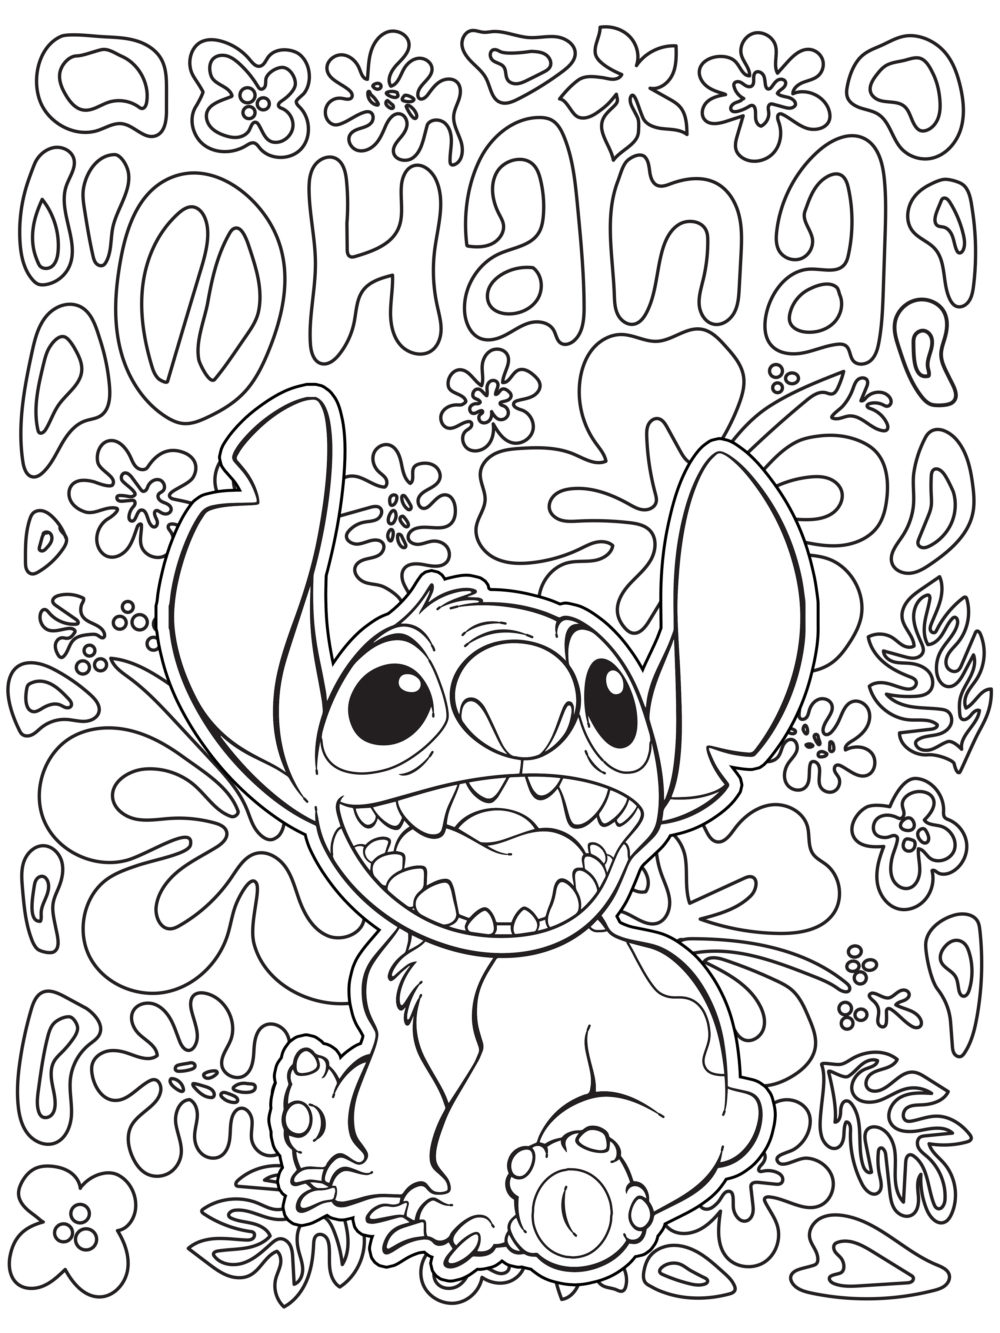 Jessie Coloring Pages To Print At Getdrawings Com Free For